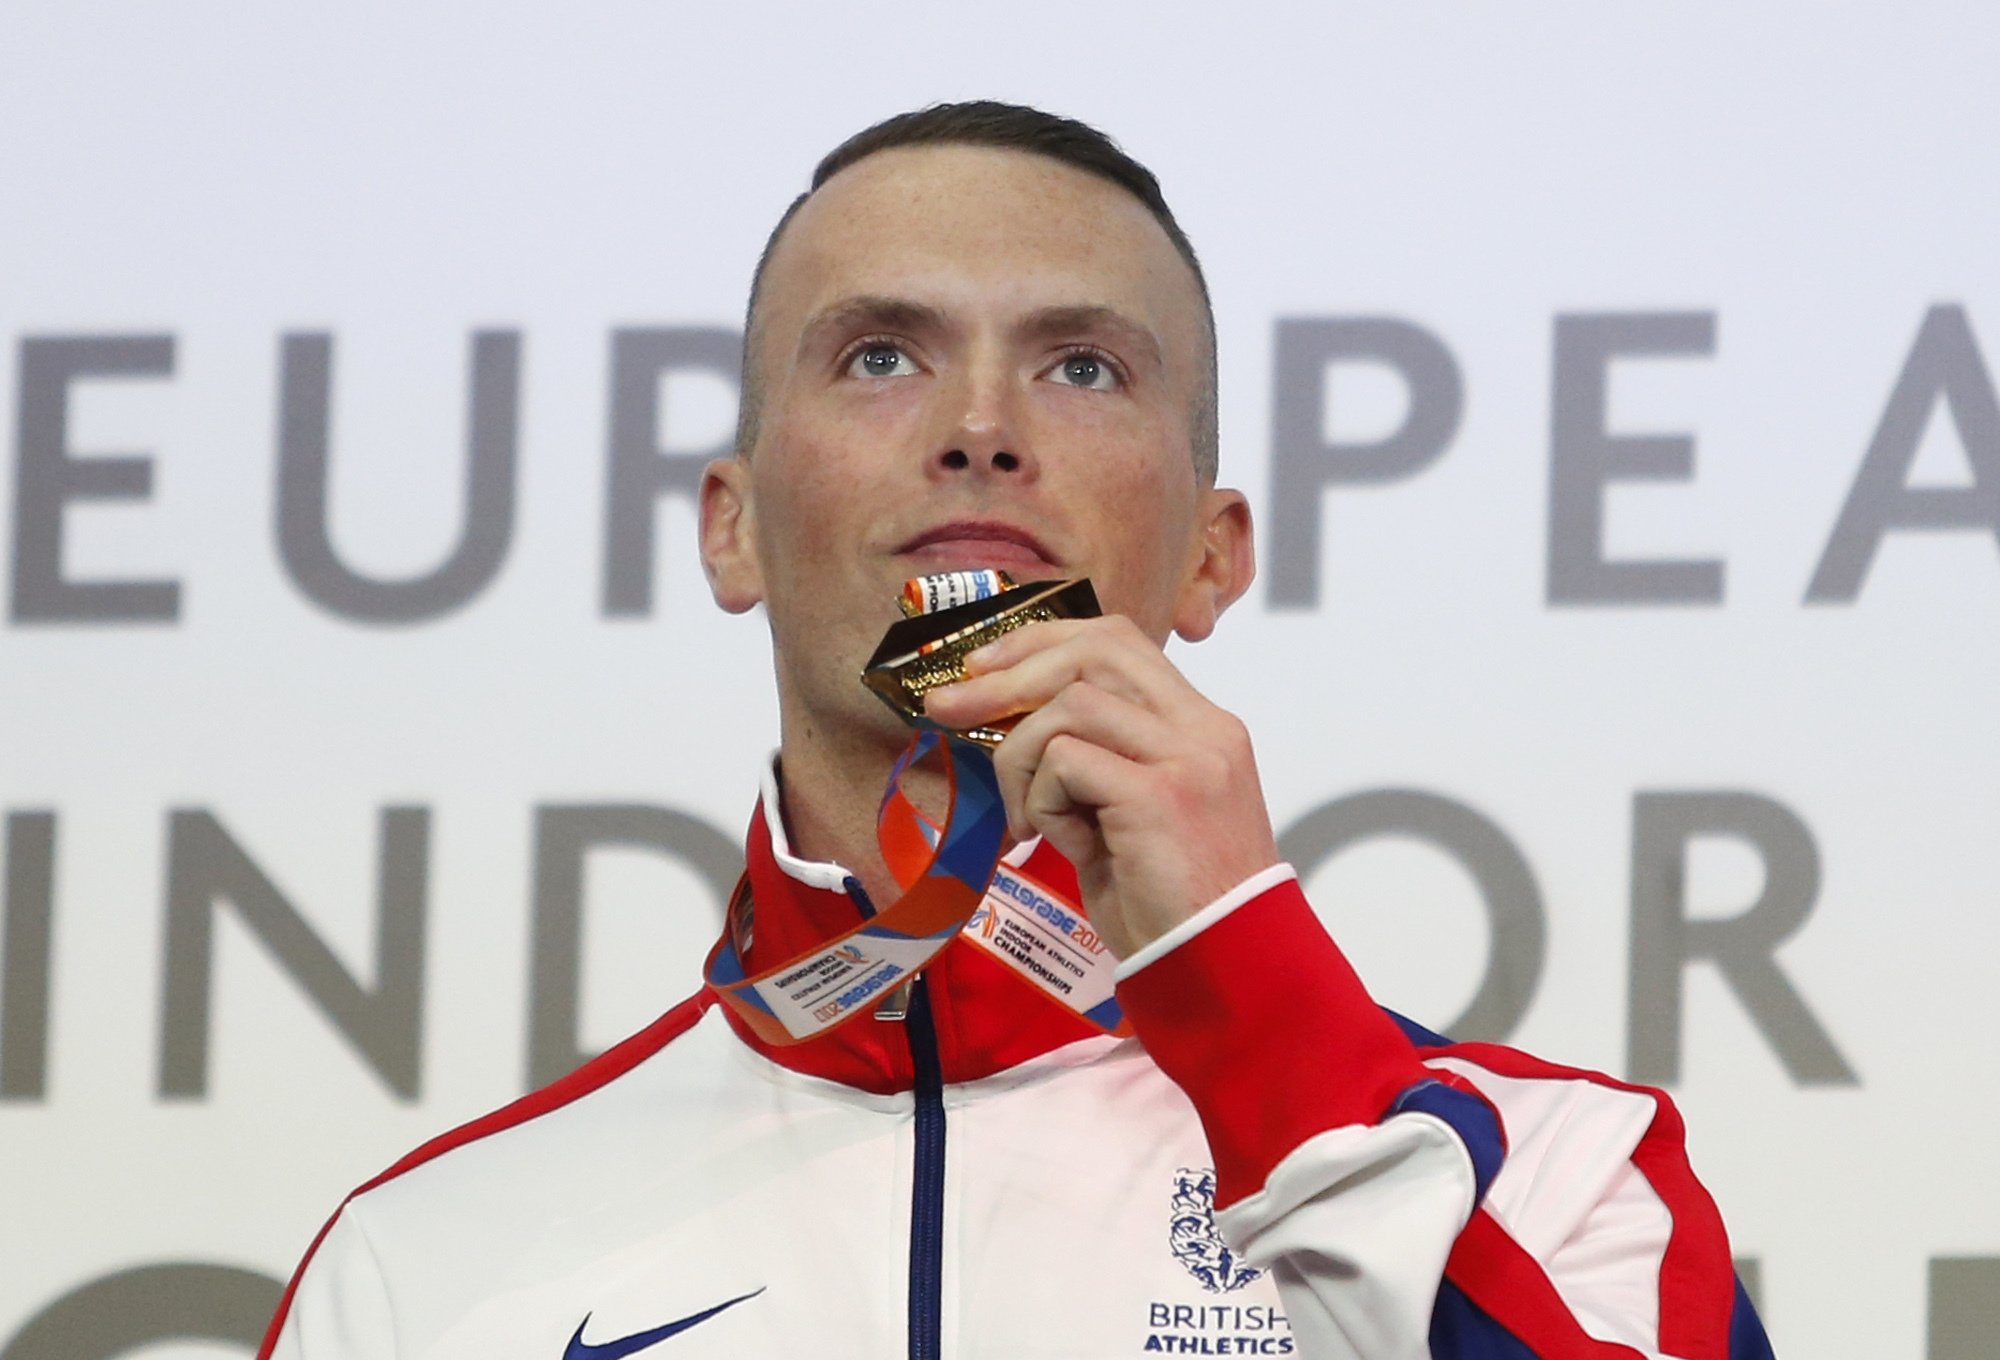 START LINE: Richard Kilty will defend his European Indoor 60m title after event organisers effectively over-ruled UK Athletics' decision not to name him on their team